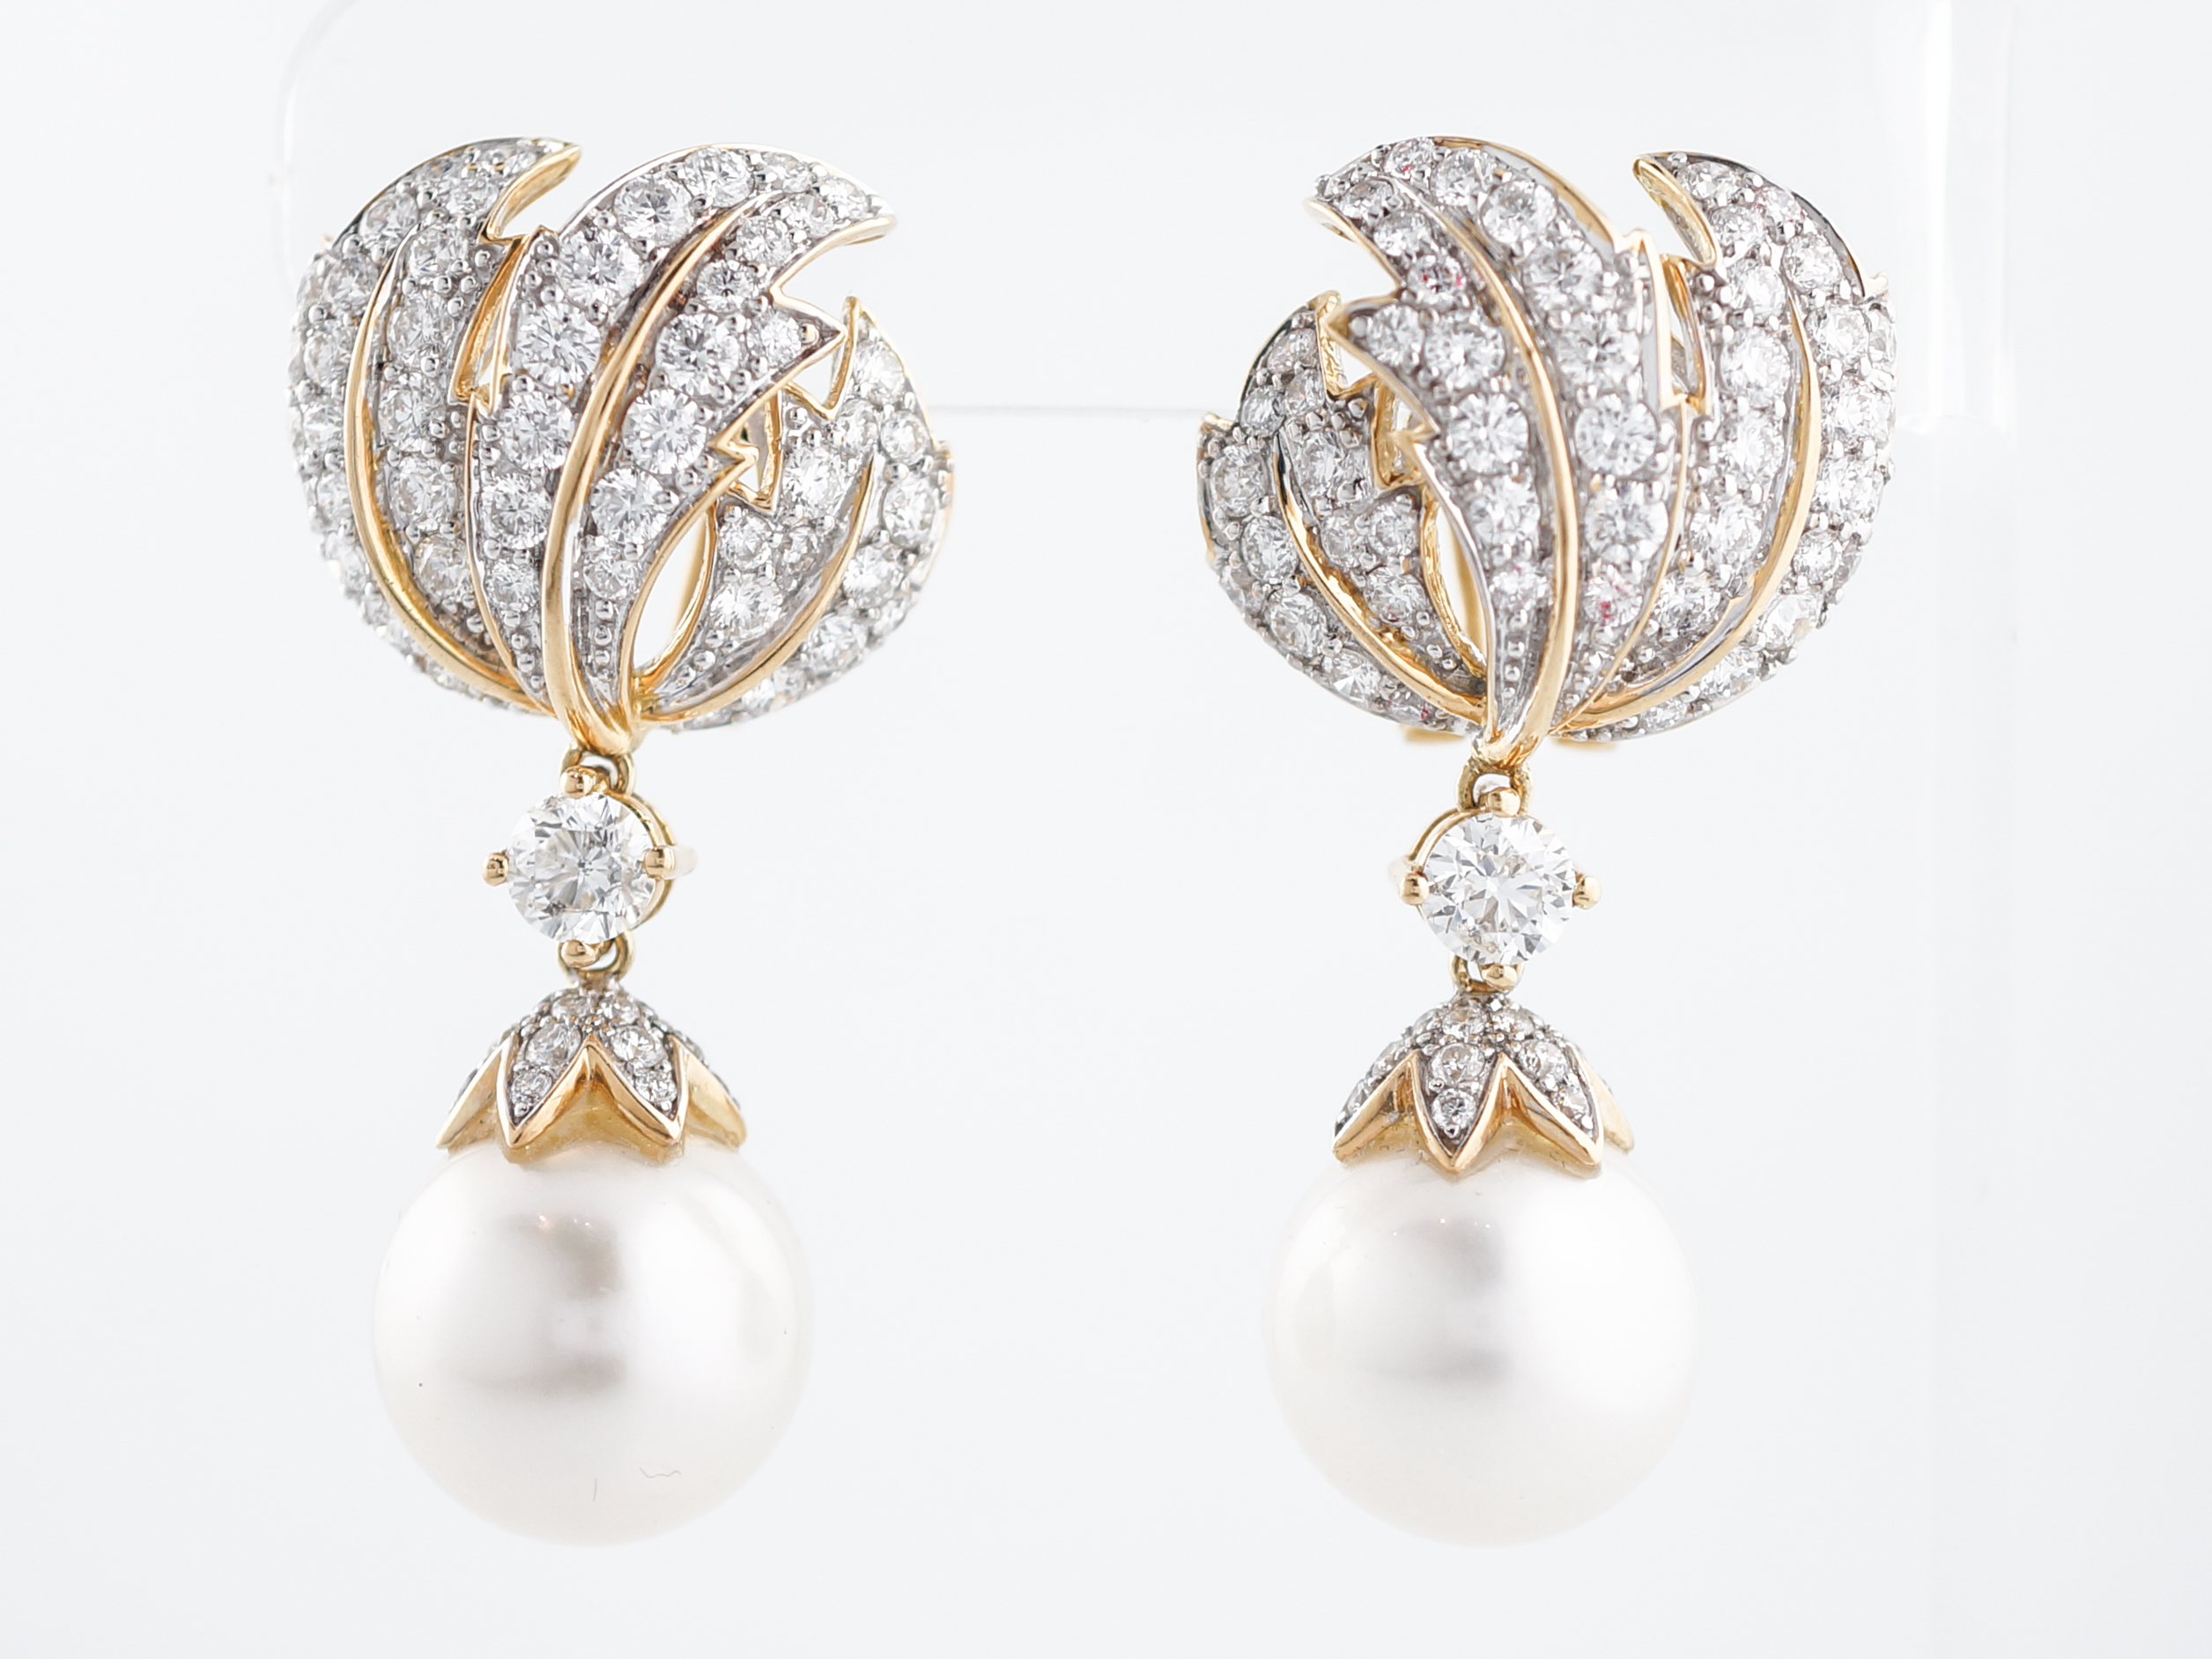 Earrings Modern South Sea Pearls 820 Round Brilliant